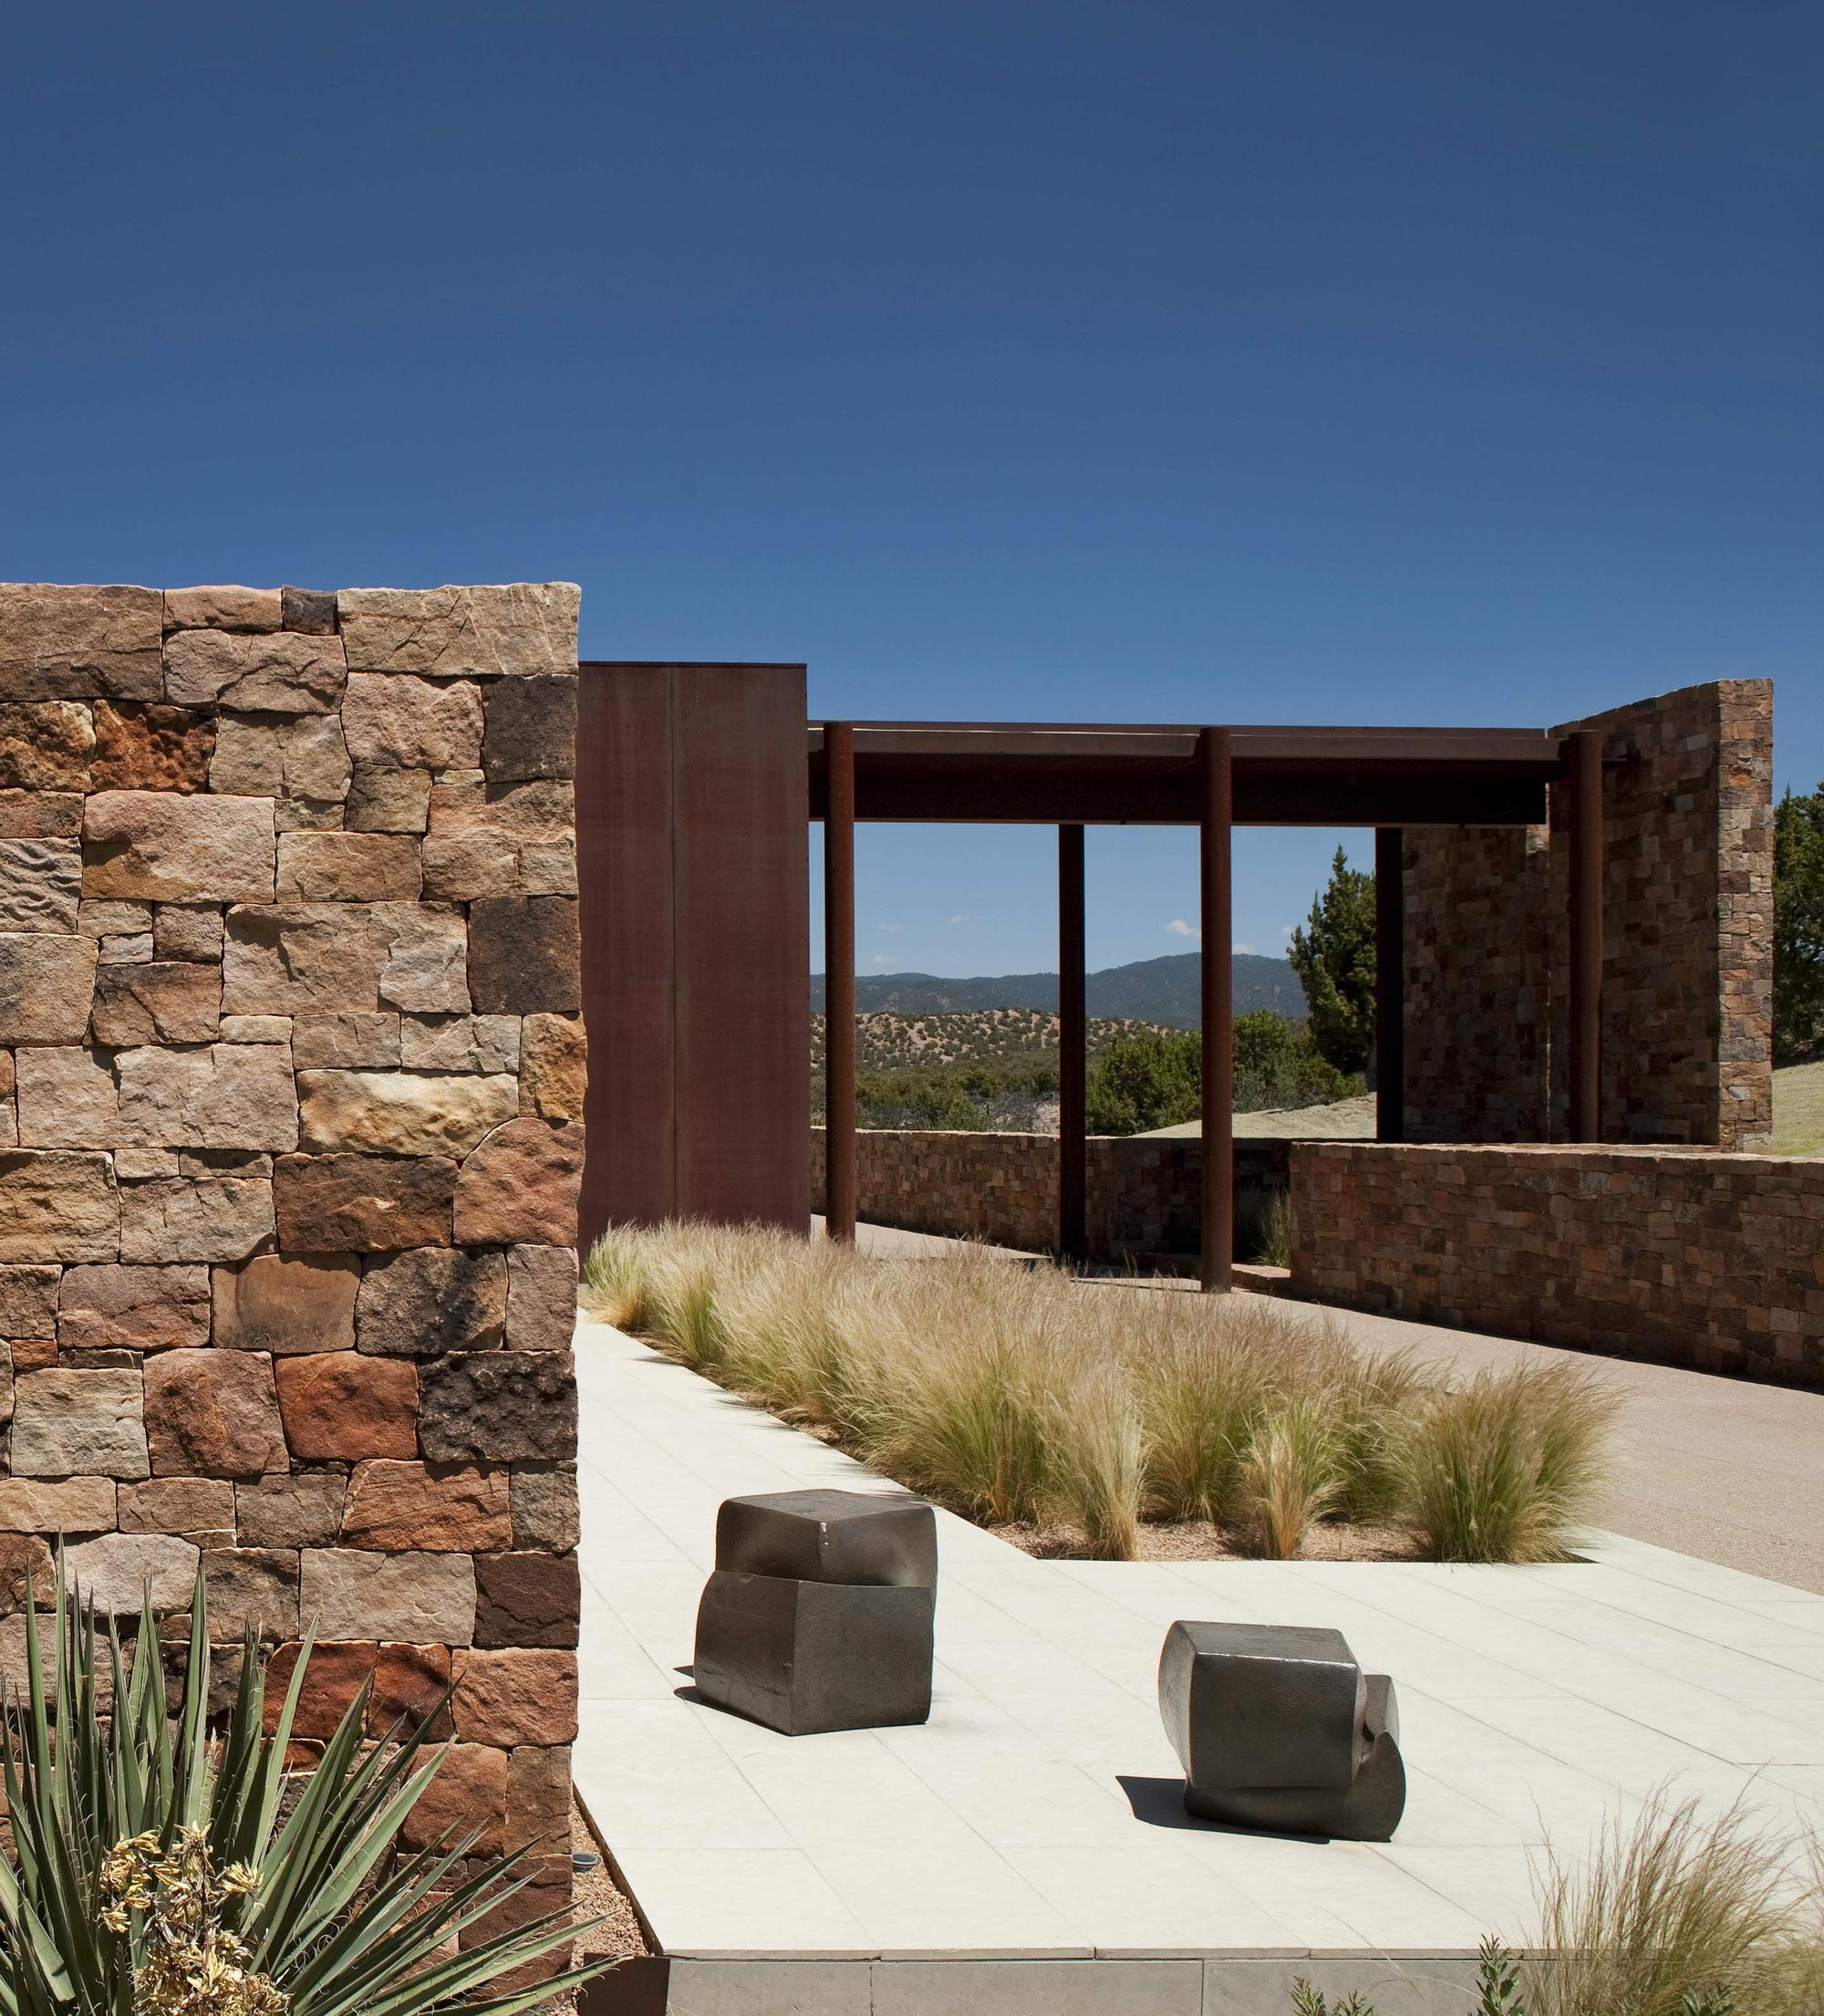 Casa Valle Escondido / Bucchieri Architects